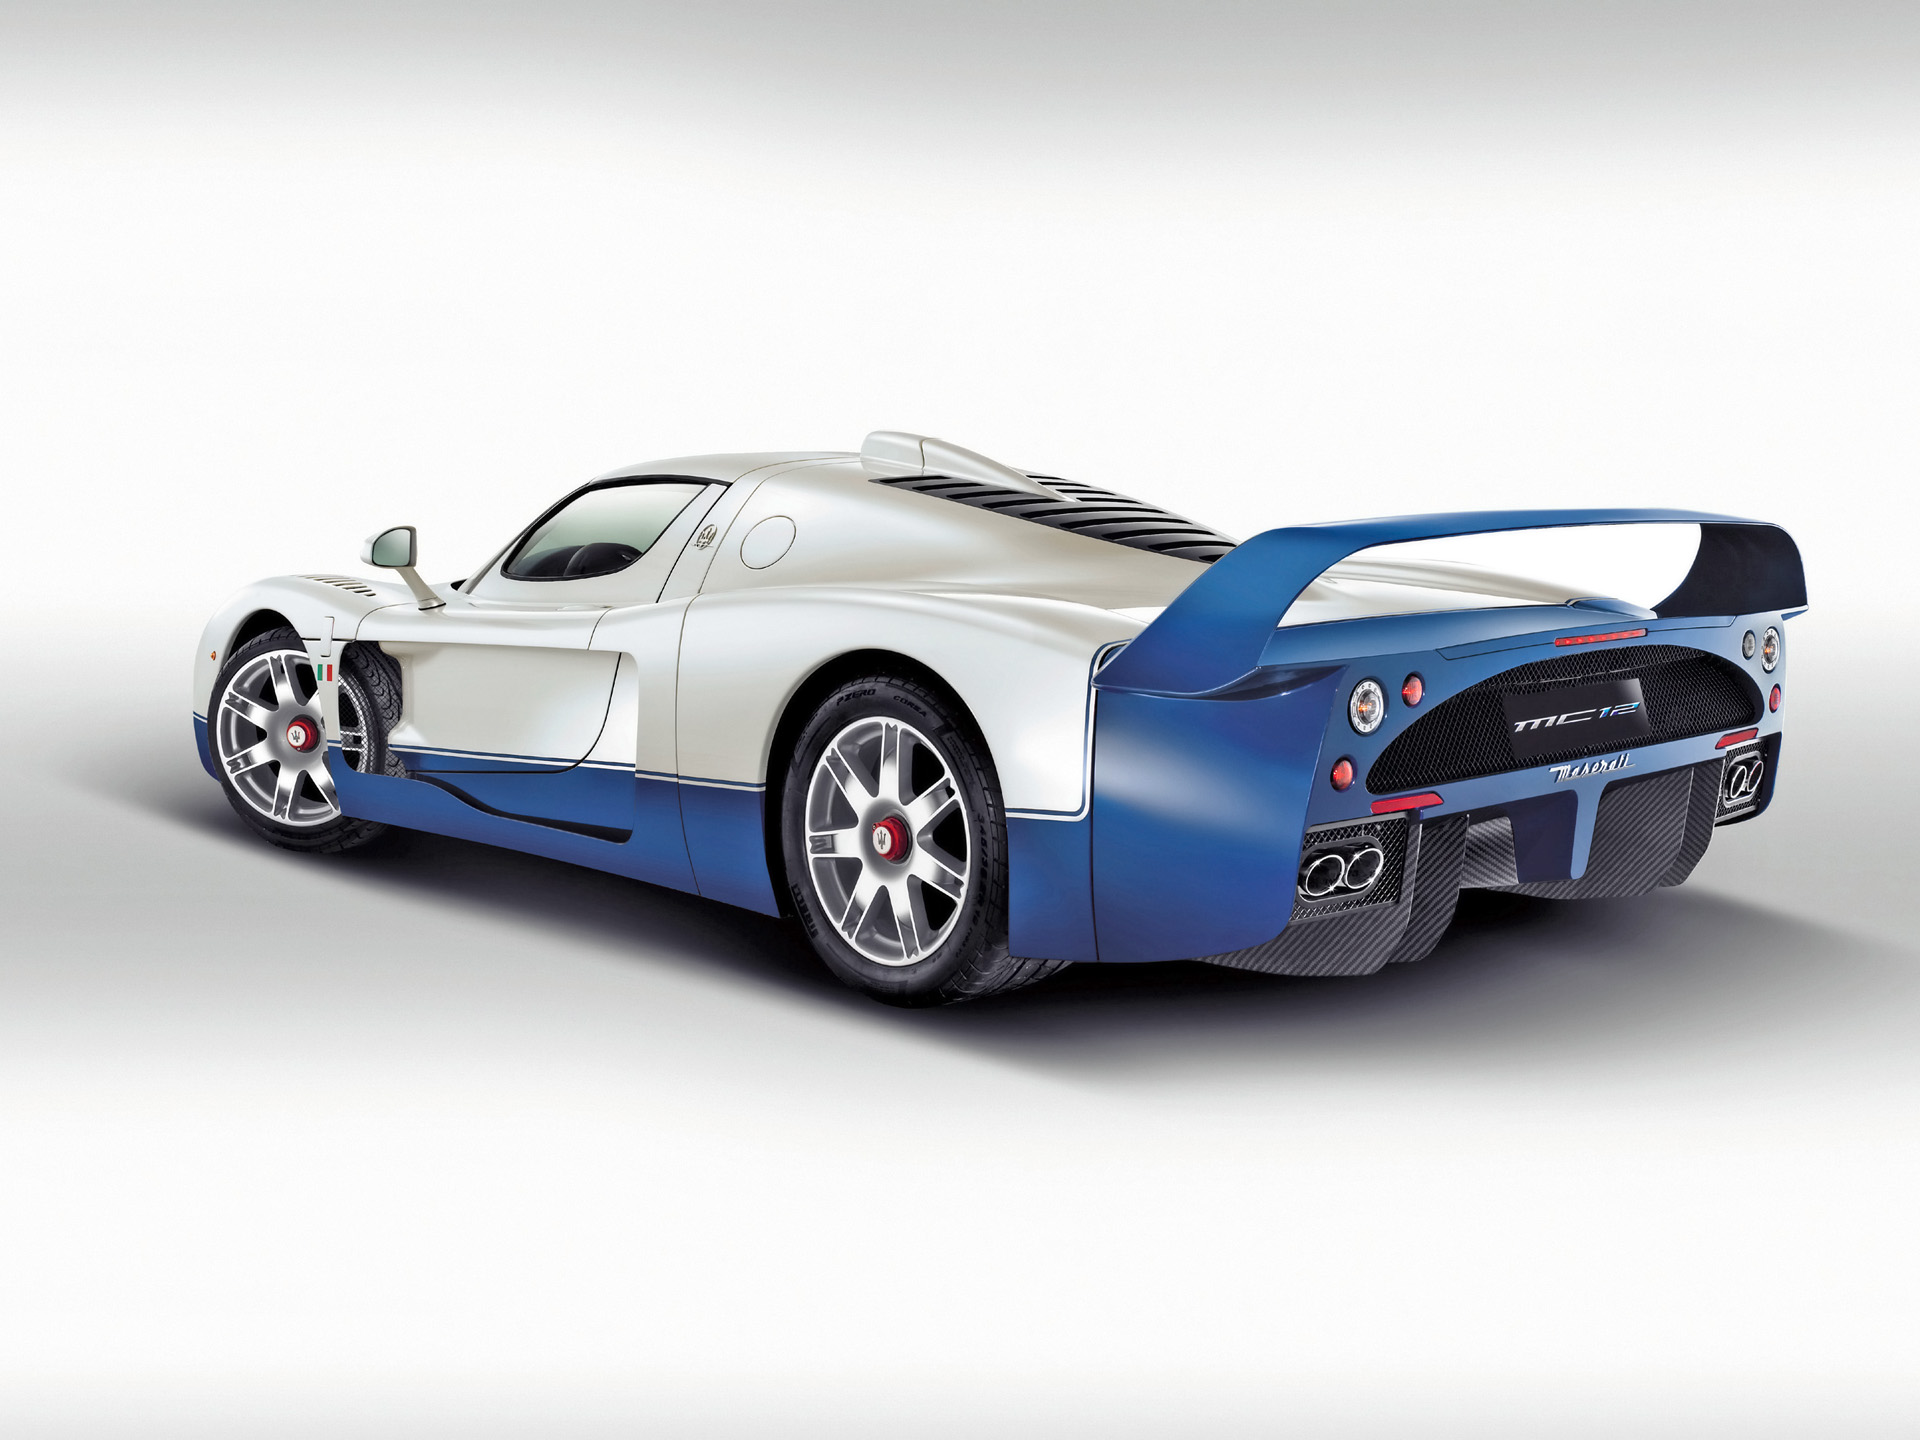 Maserati MC12 Racing Car Wallpapers in High resolution by Cars ...